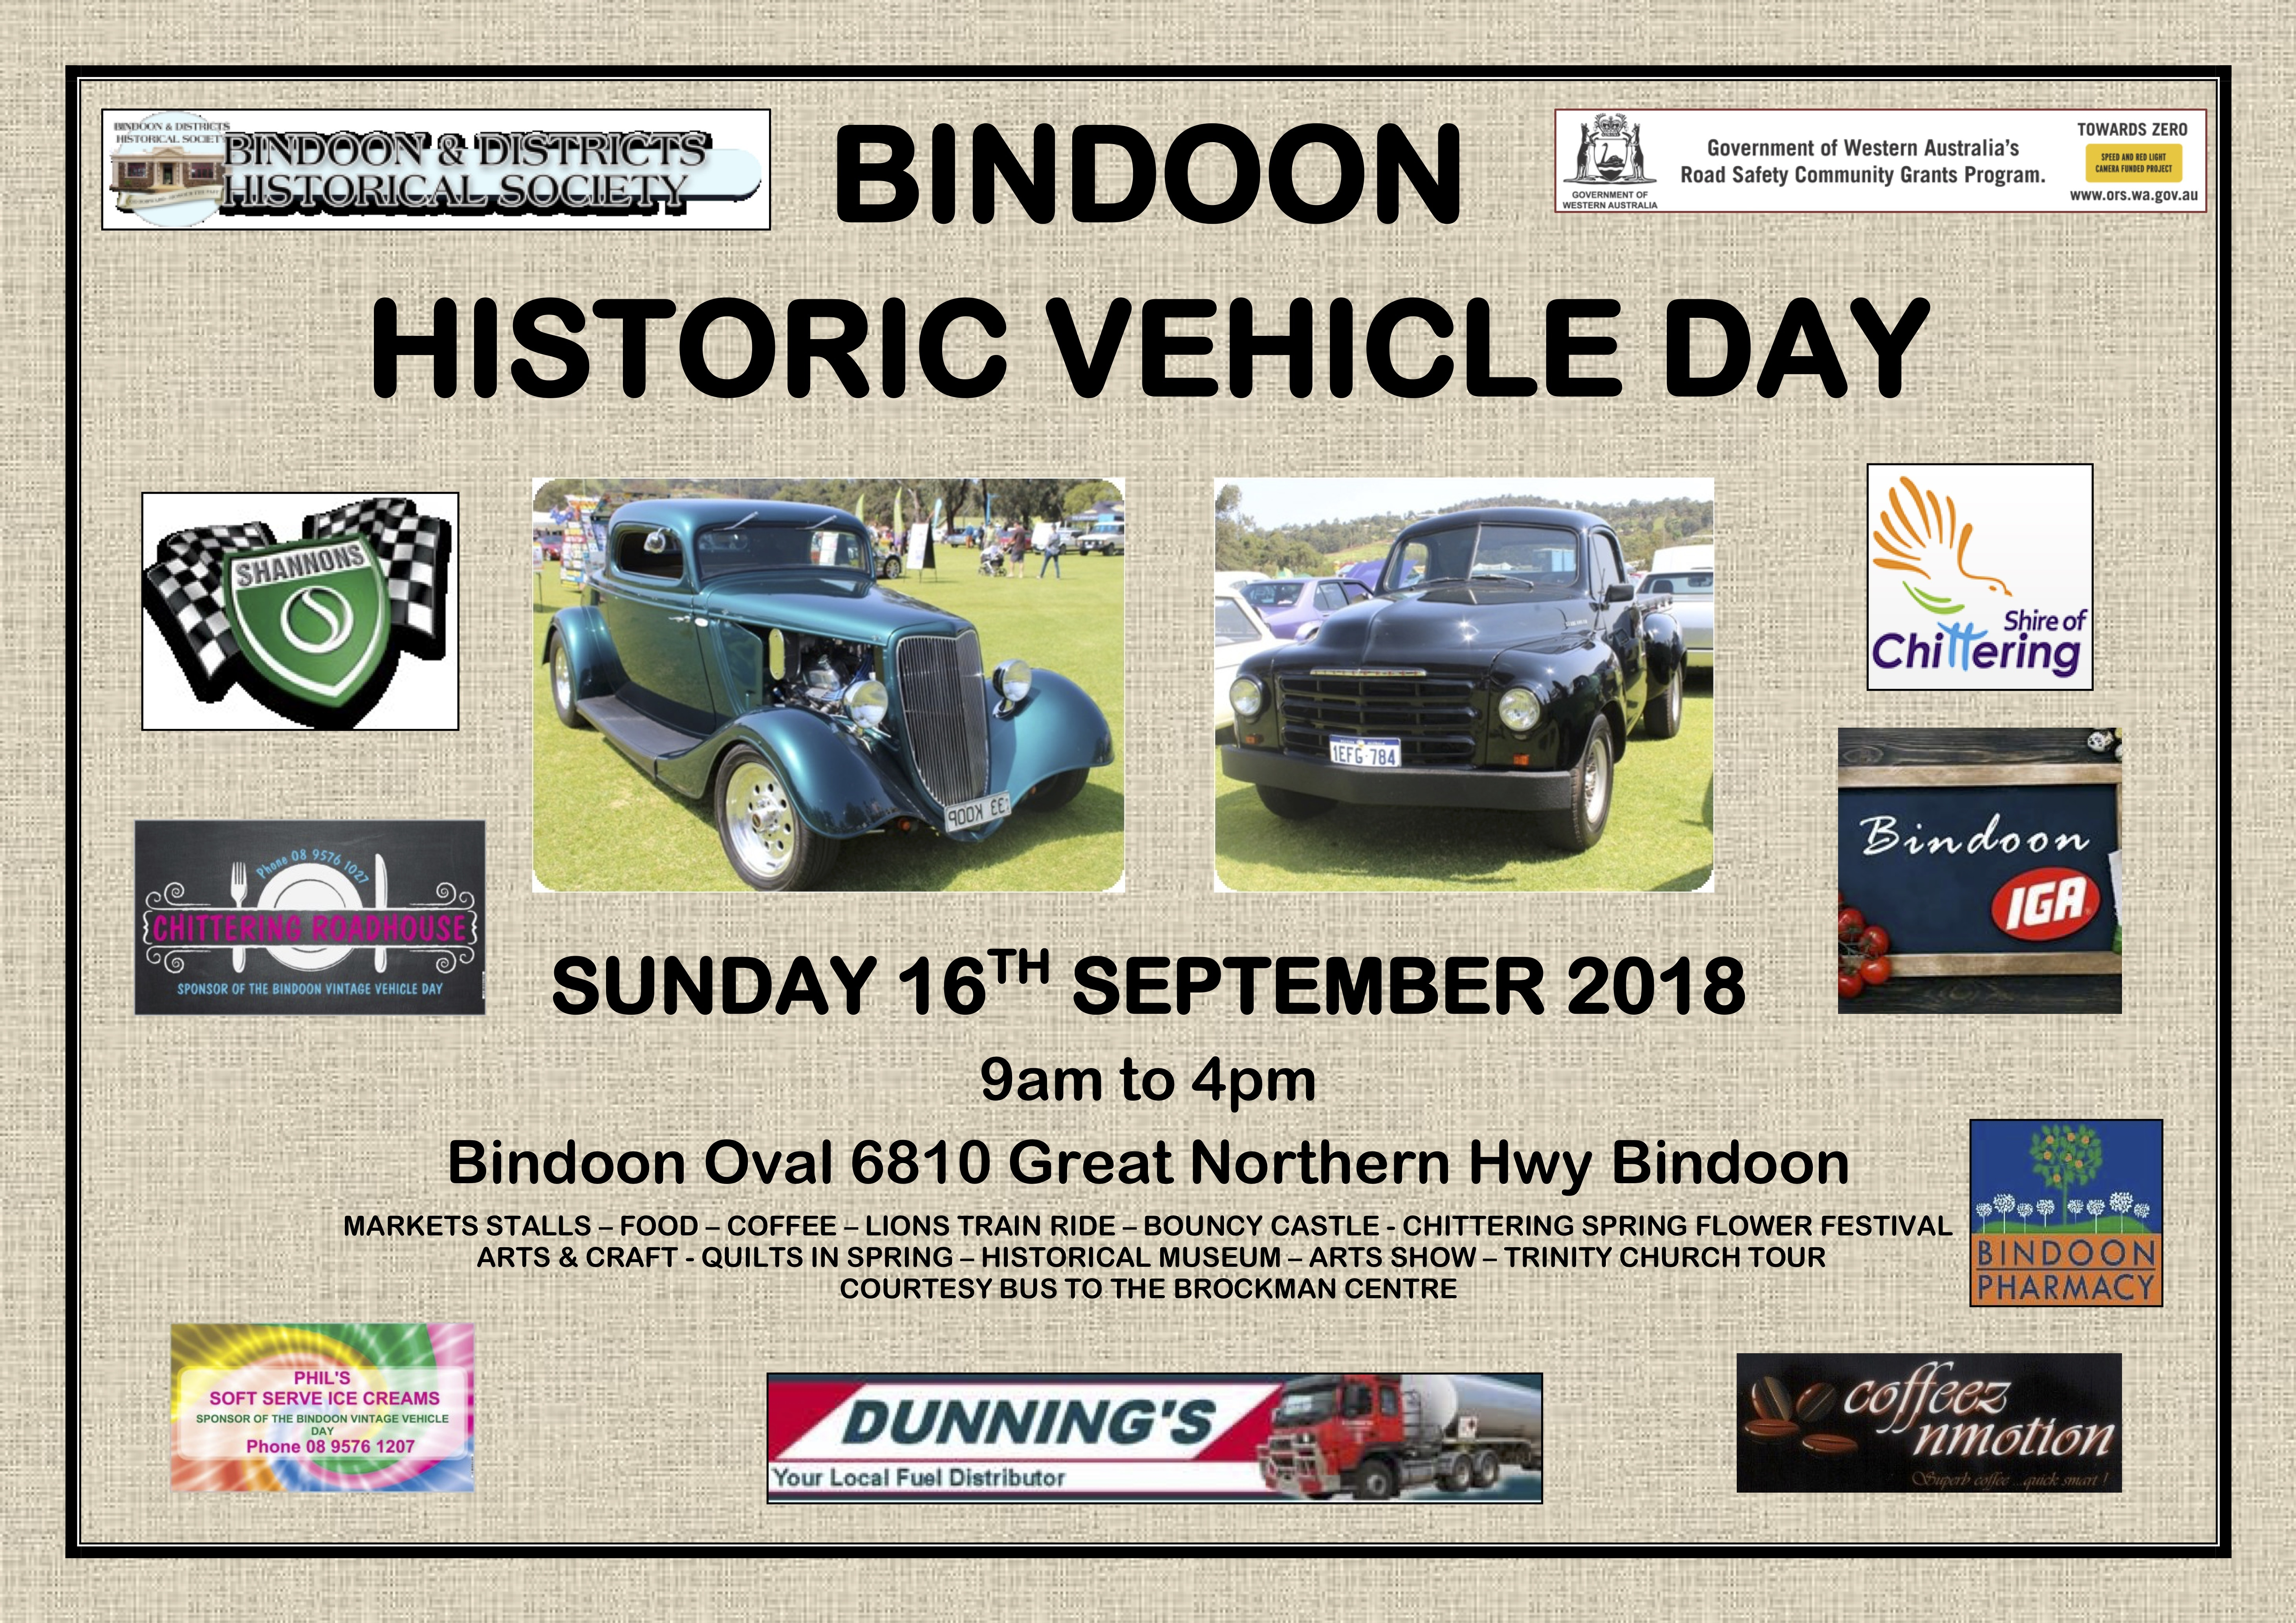 87177628e7b This Sunday, take a walk down memory lane at Bindoon Historic Vehicle Day  2018! As part of the Chittering Spring Festival, this annual,  family-friendly ...